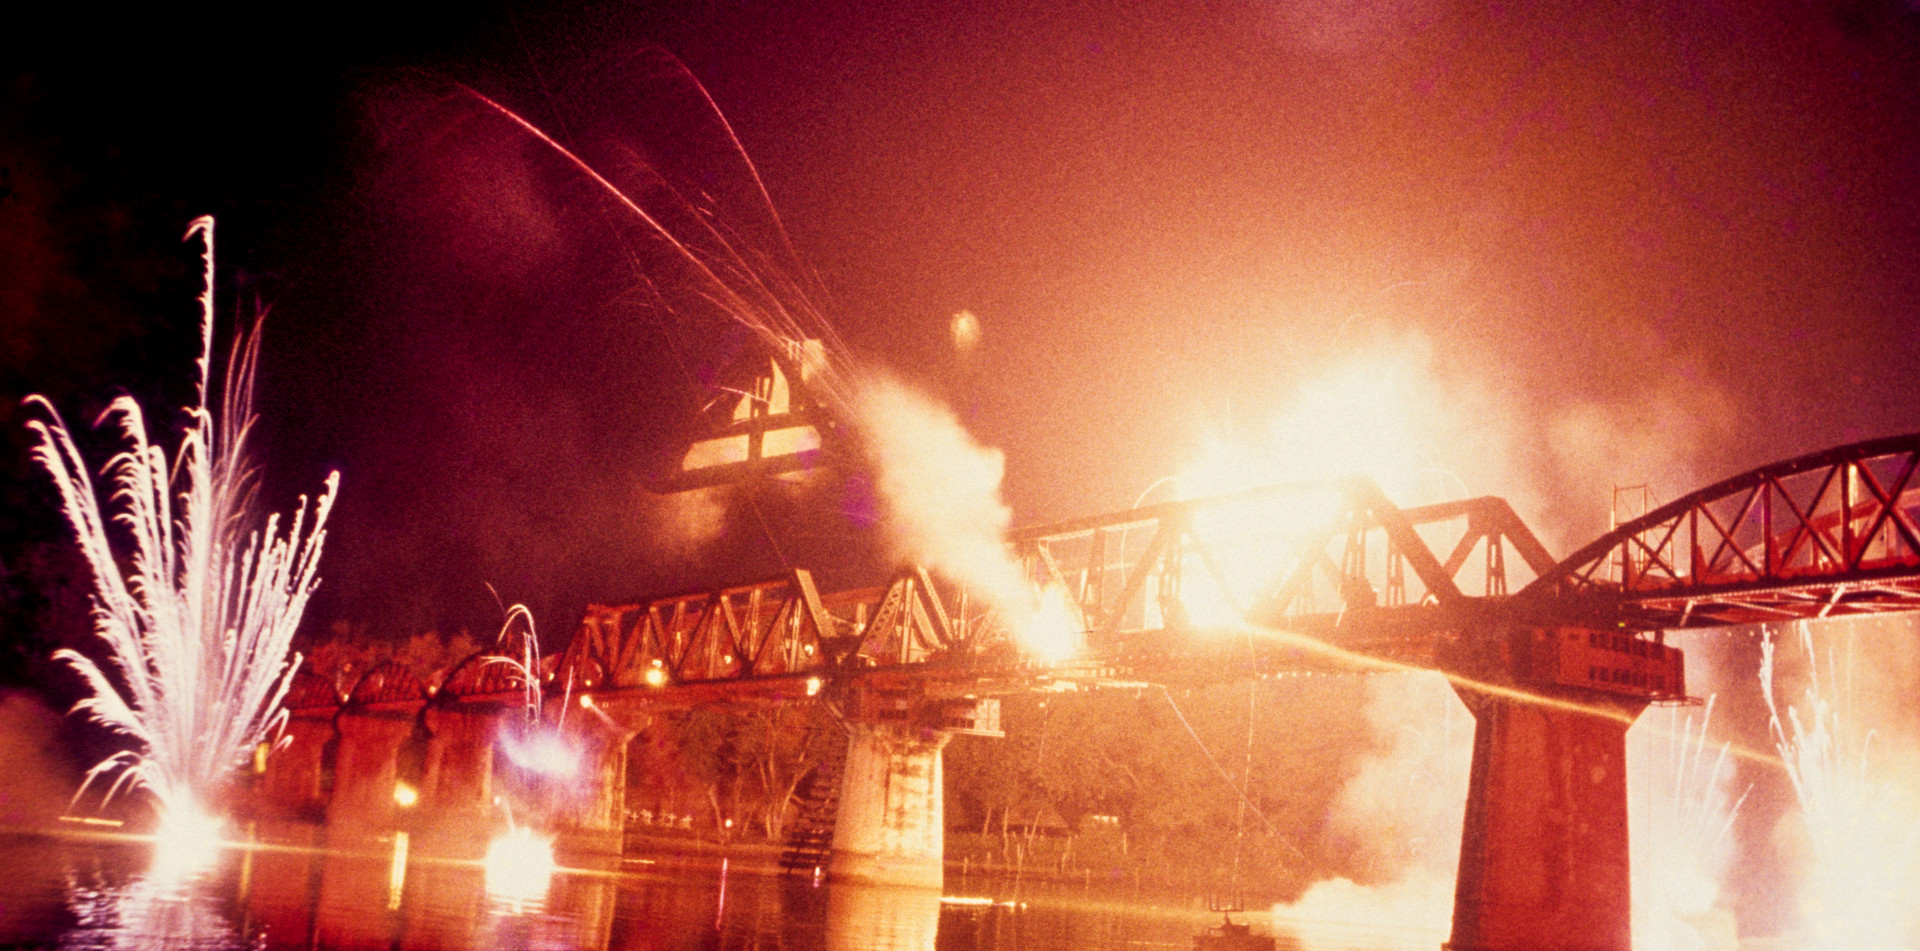 River Kwae, Thailand. Light and sound show depicting the bombing of the bridge in 1944/e